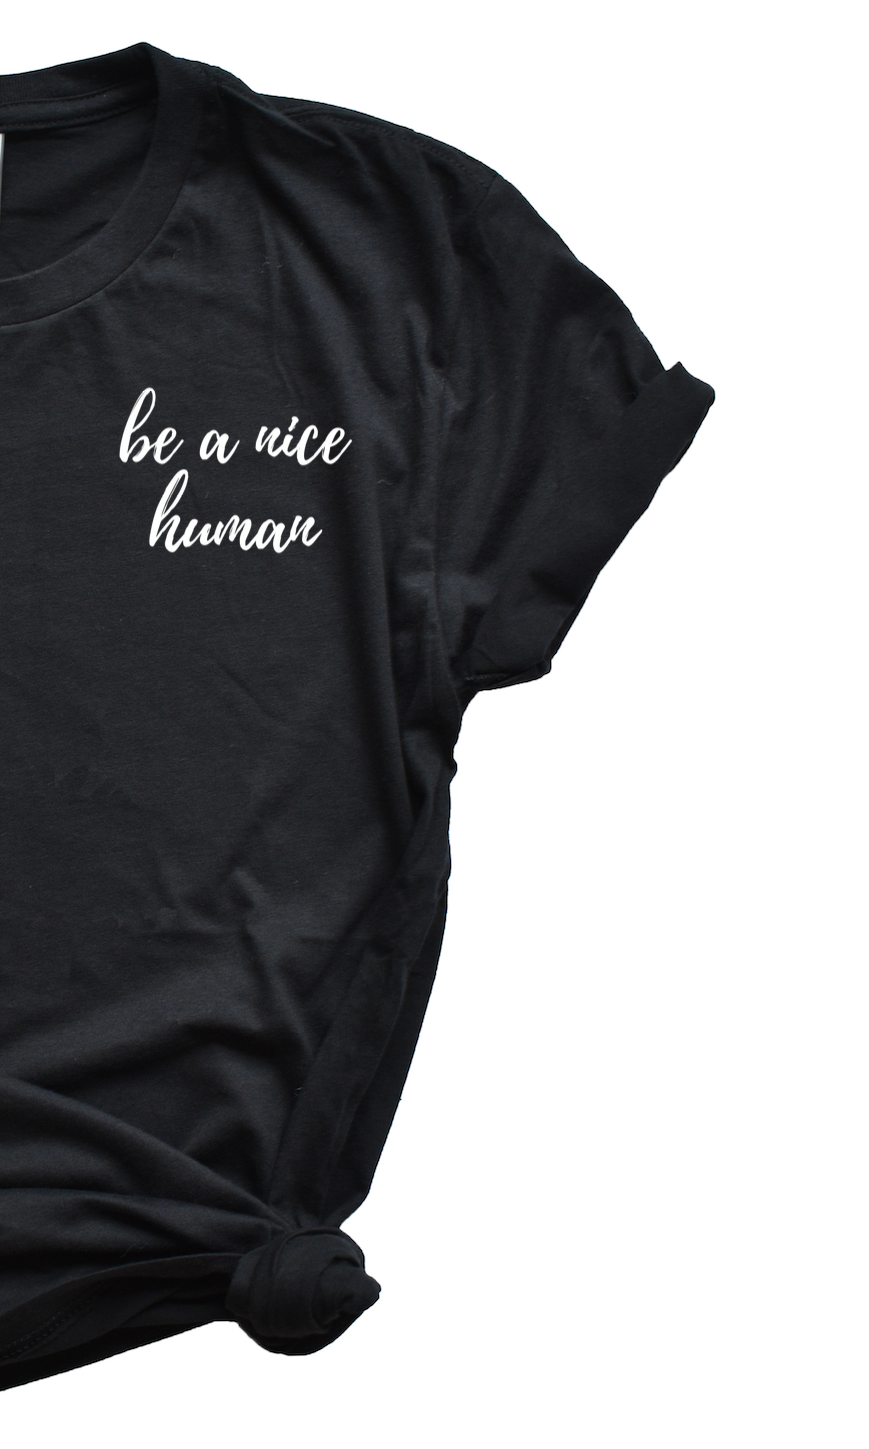 Be a Nice Human Black Tshirt Women's Yoga Short Sleeve